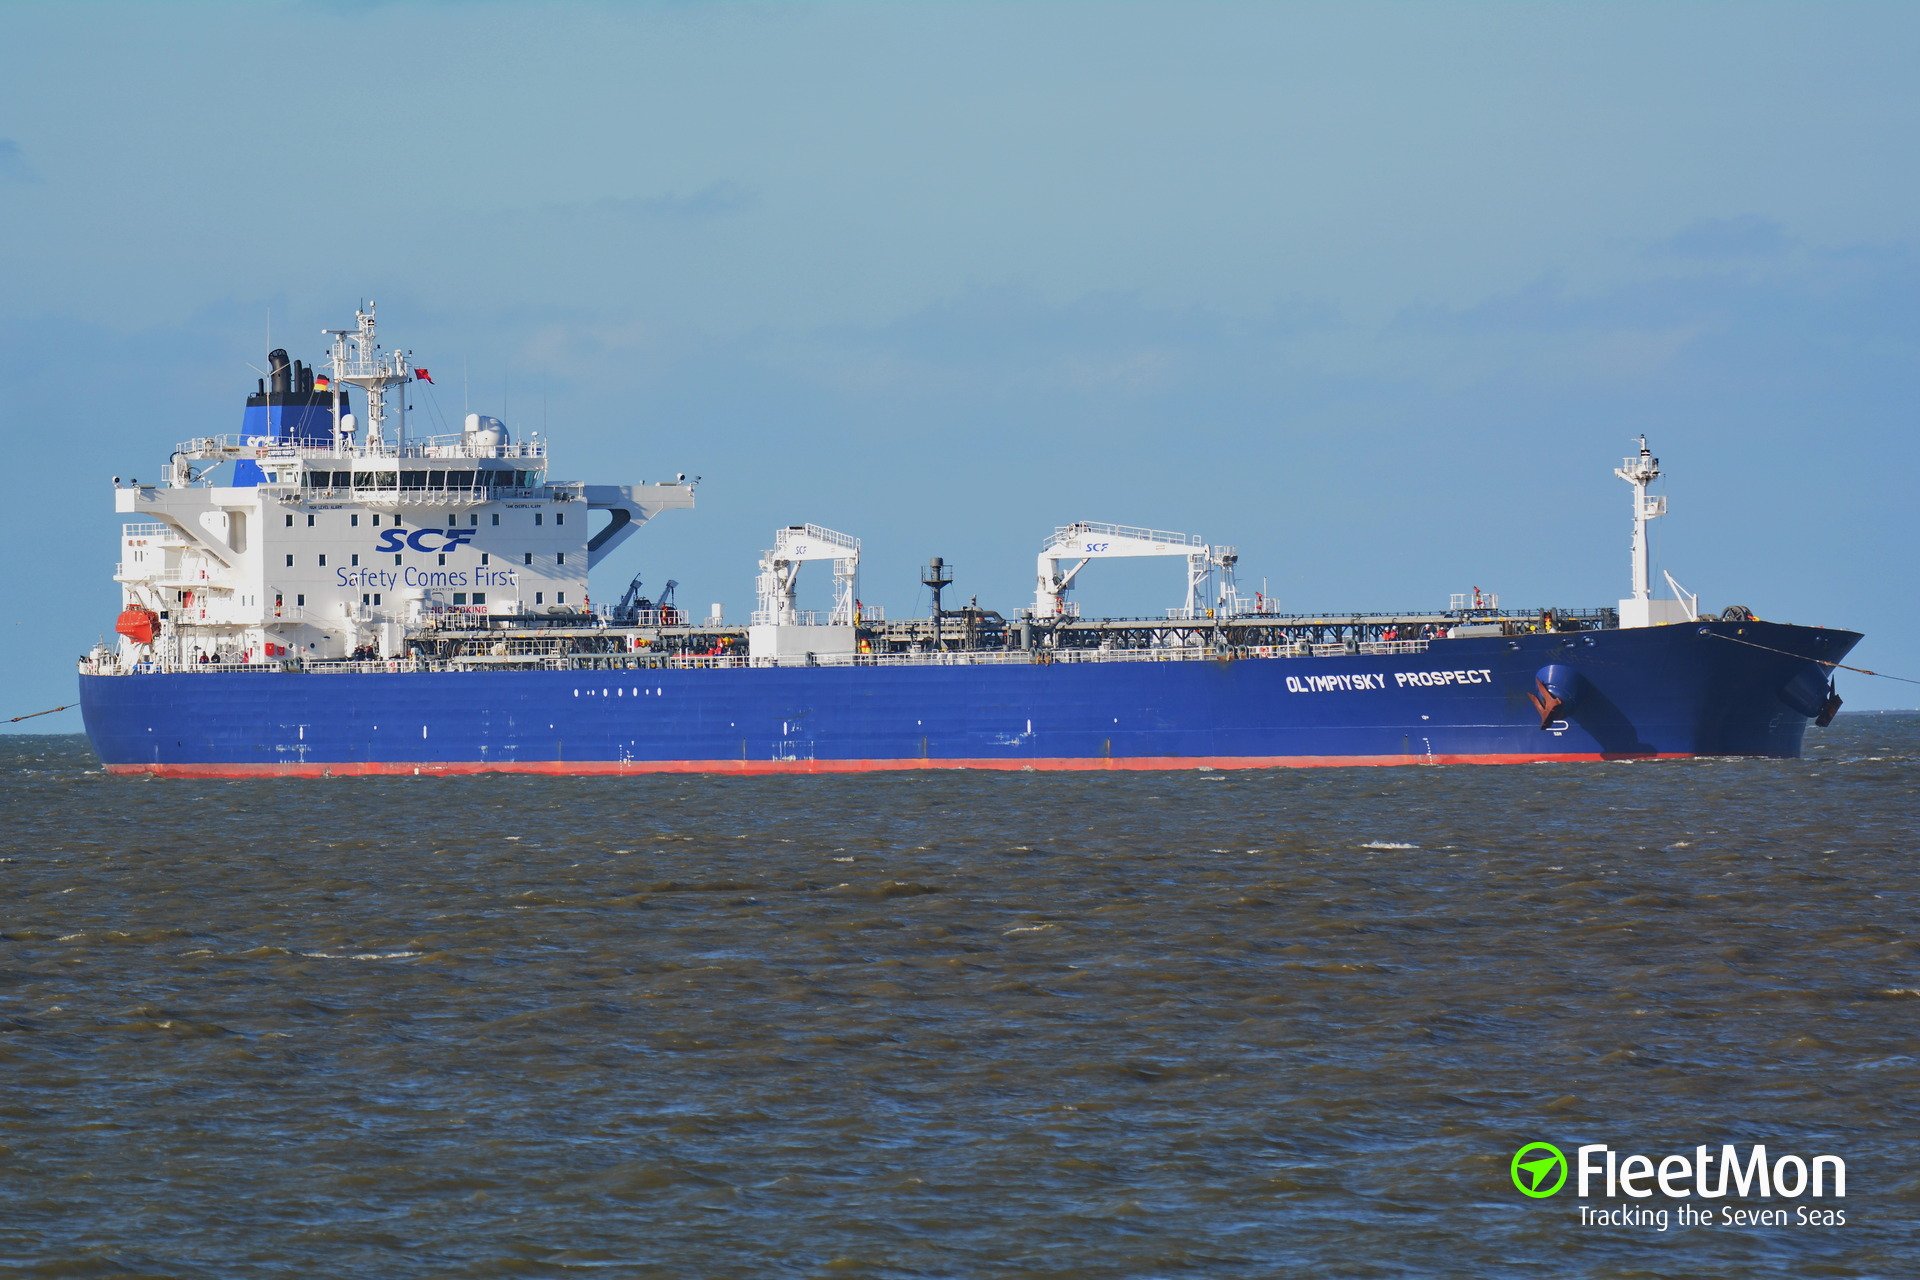 Disabled SCF tanker Olympiyskiy Prospect towed to Le Havre